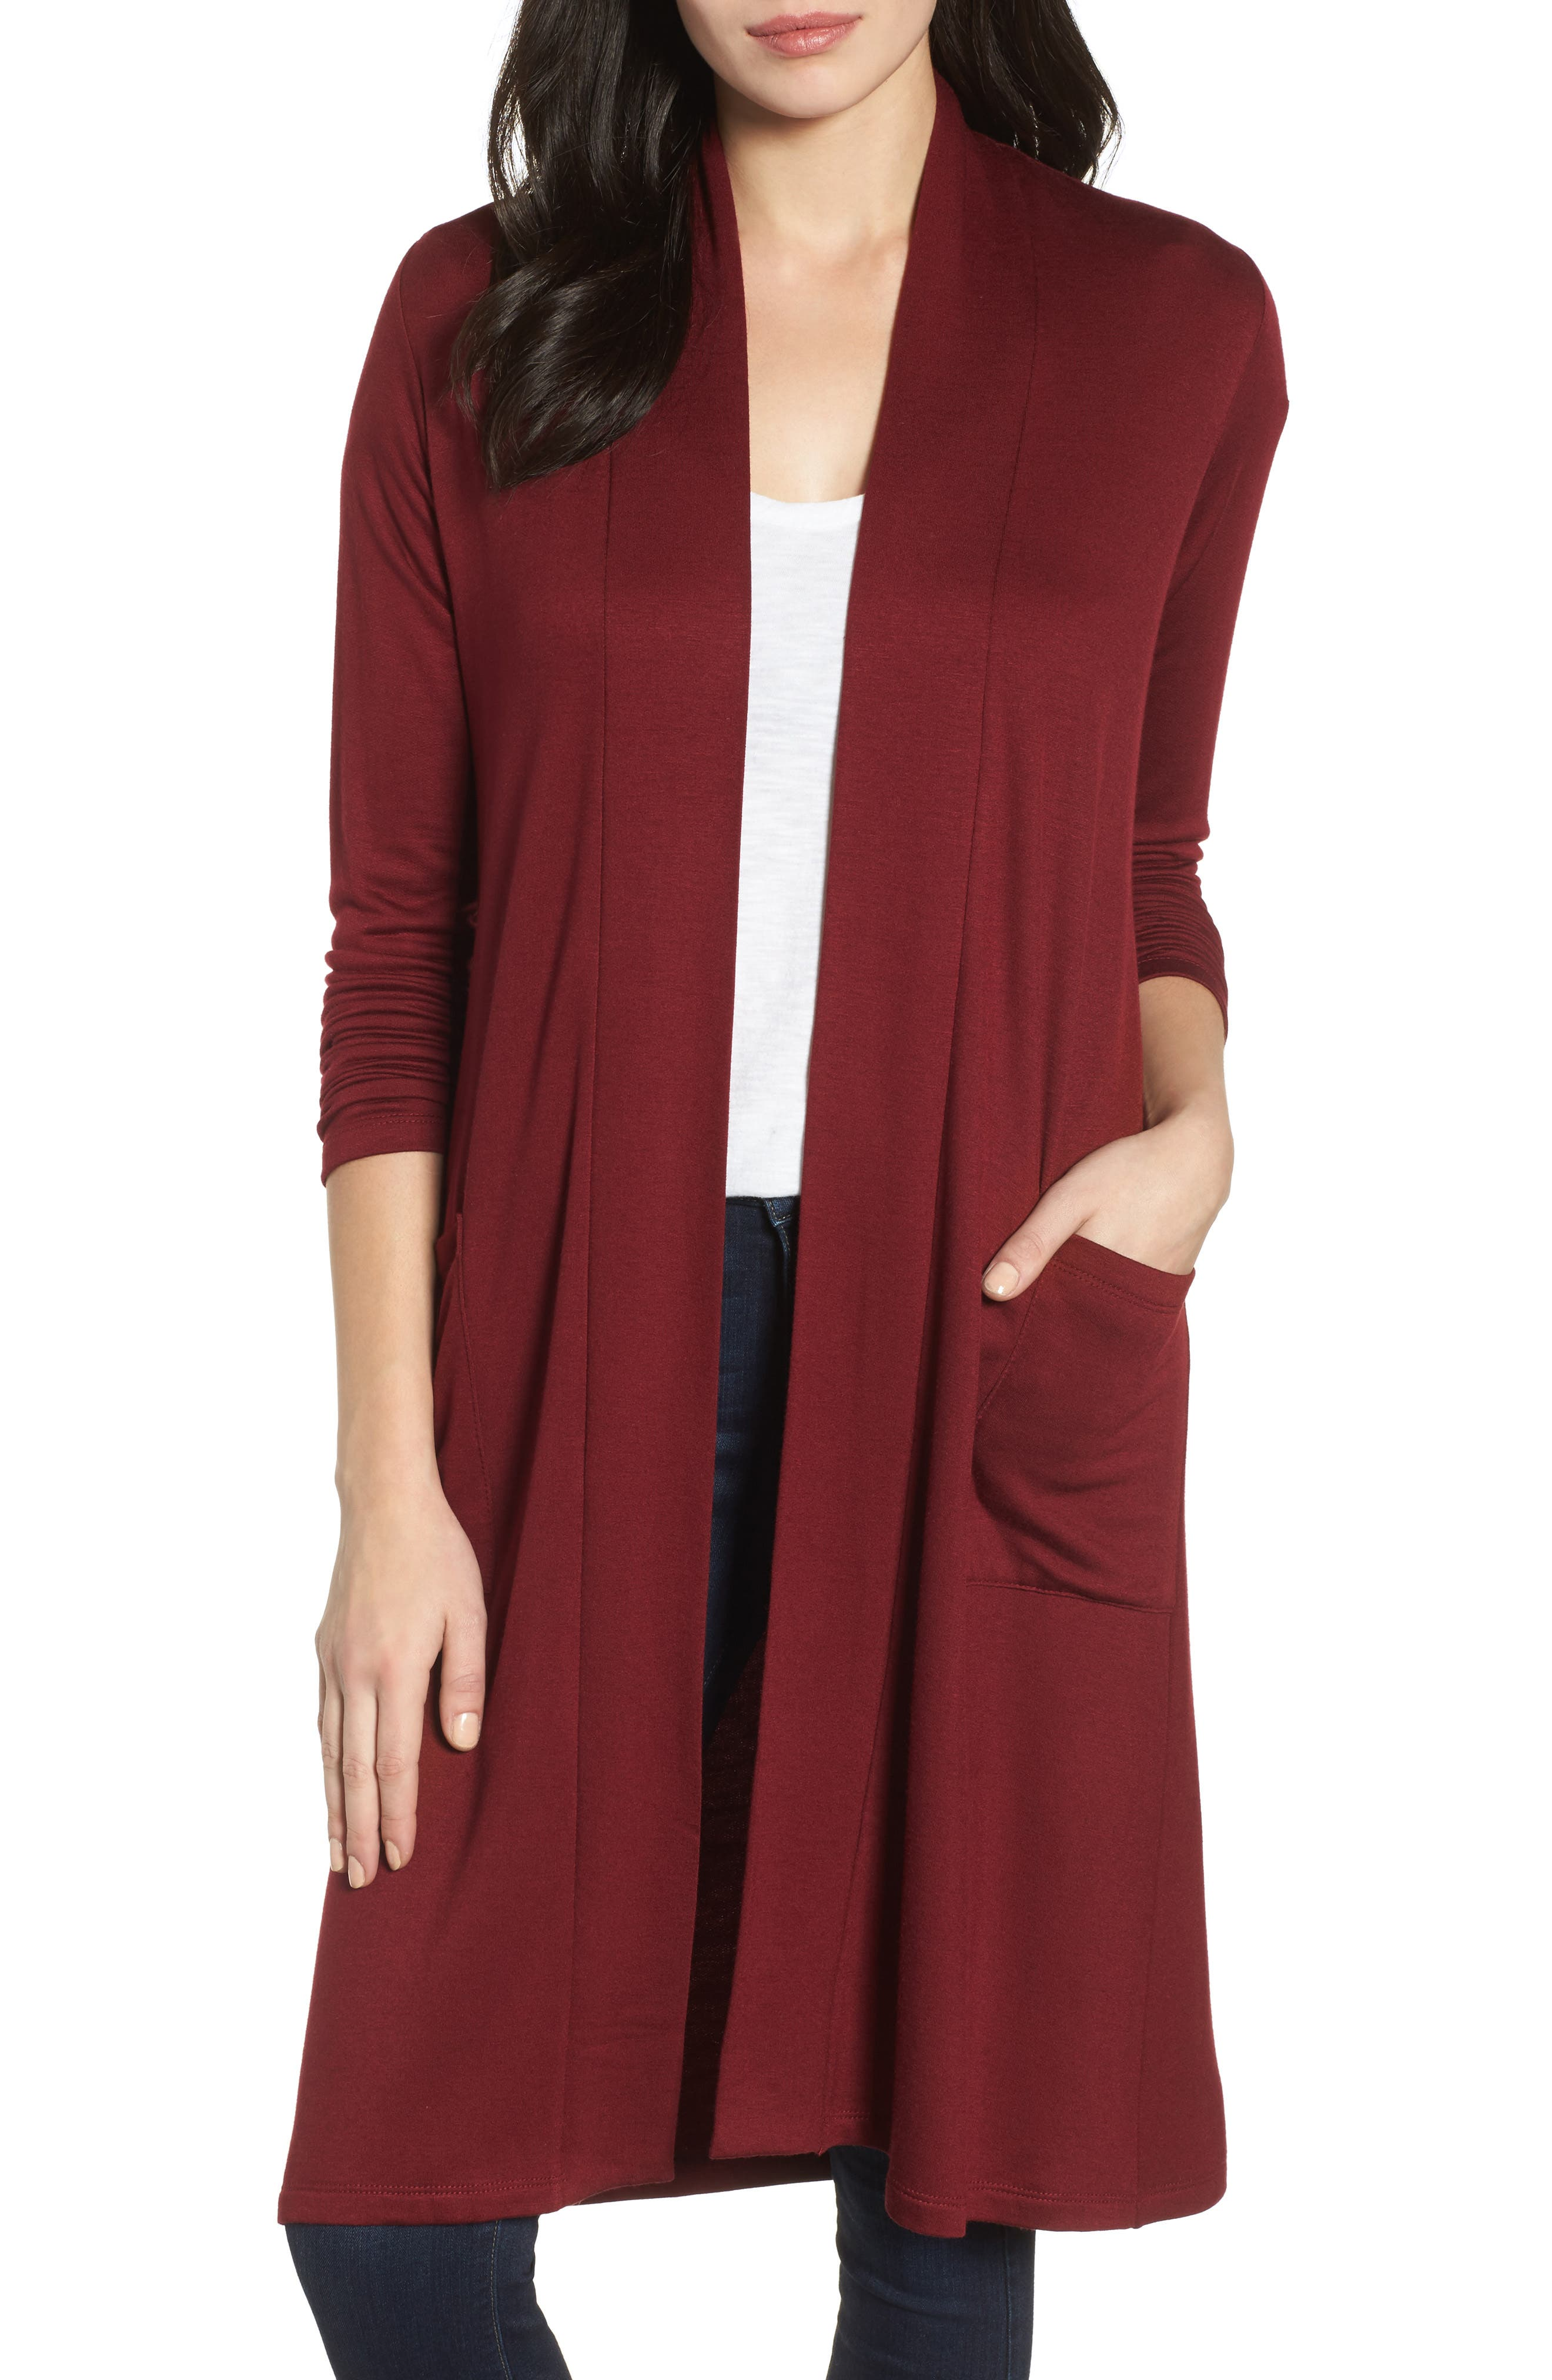 Bobeau Elegant Fleece Cardigan